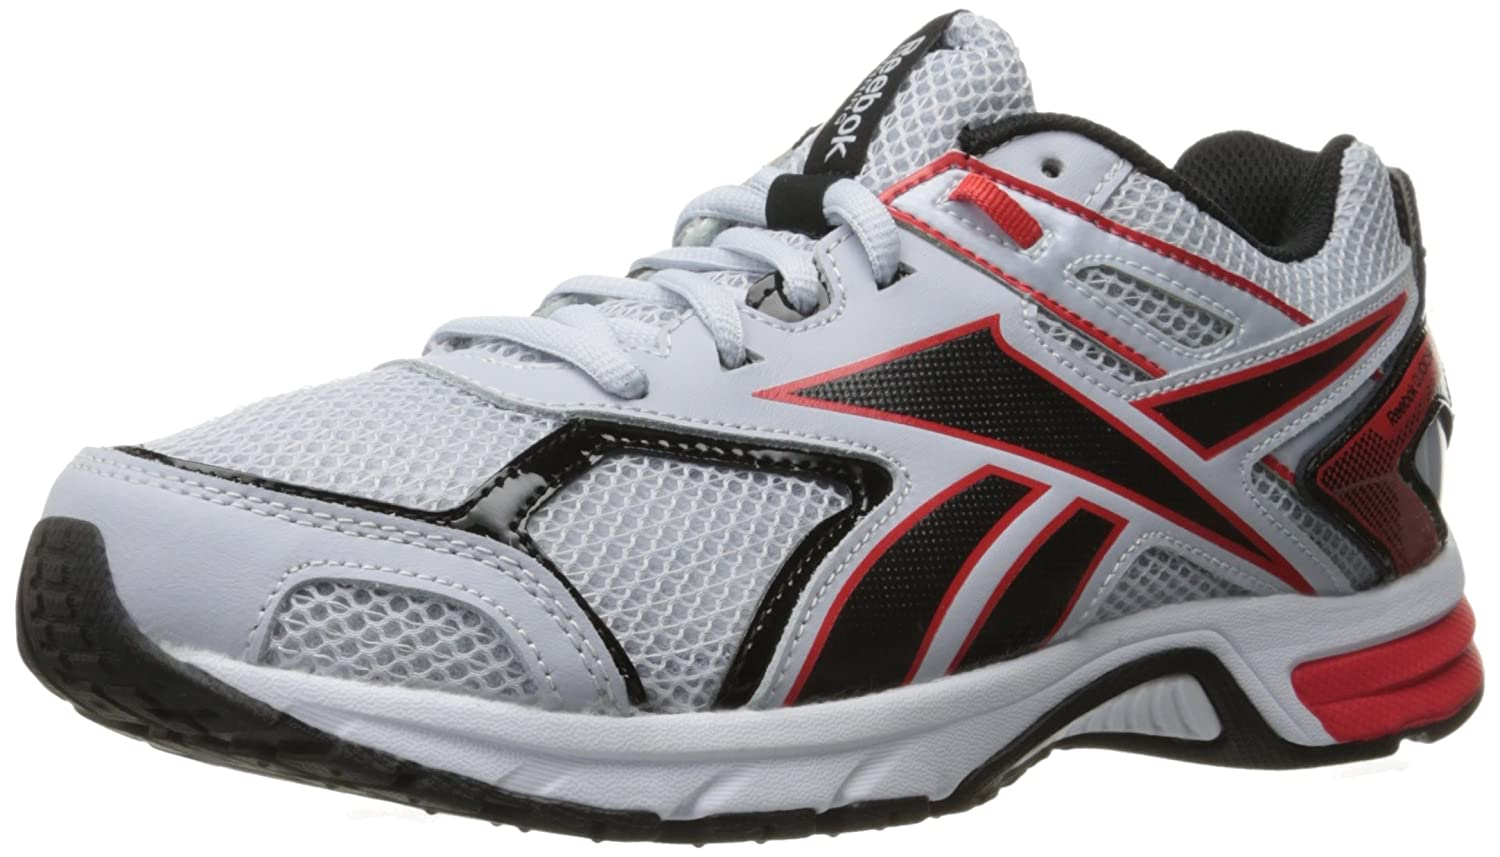 6eb3e67a0 Reebok Men s Quickchase Running Shoe